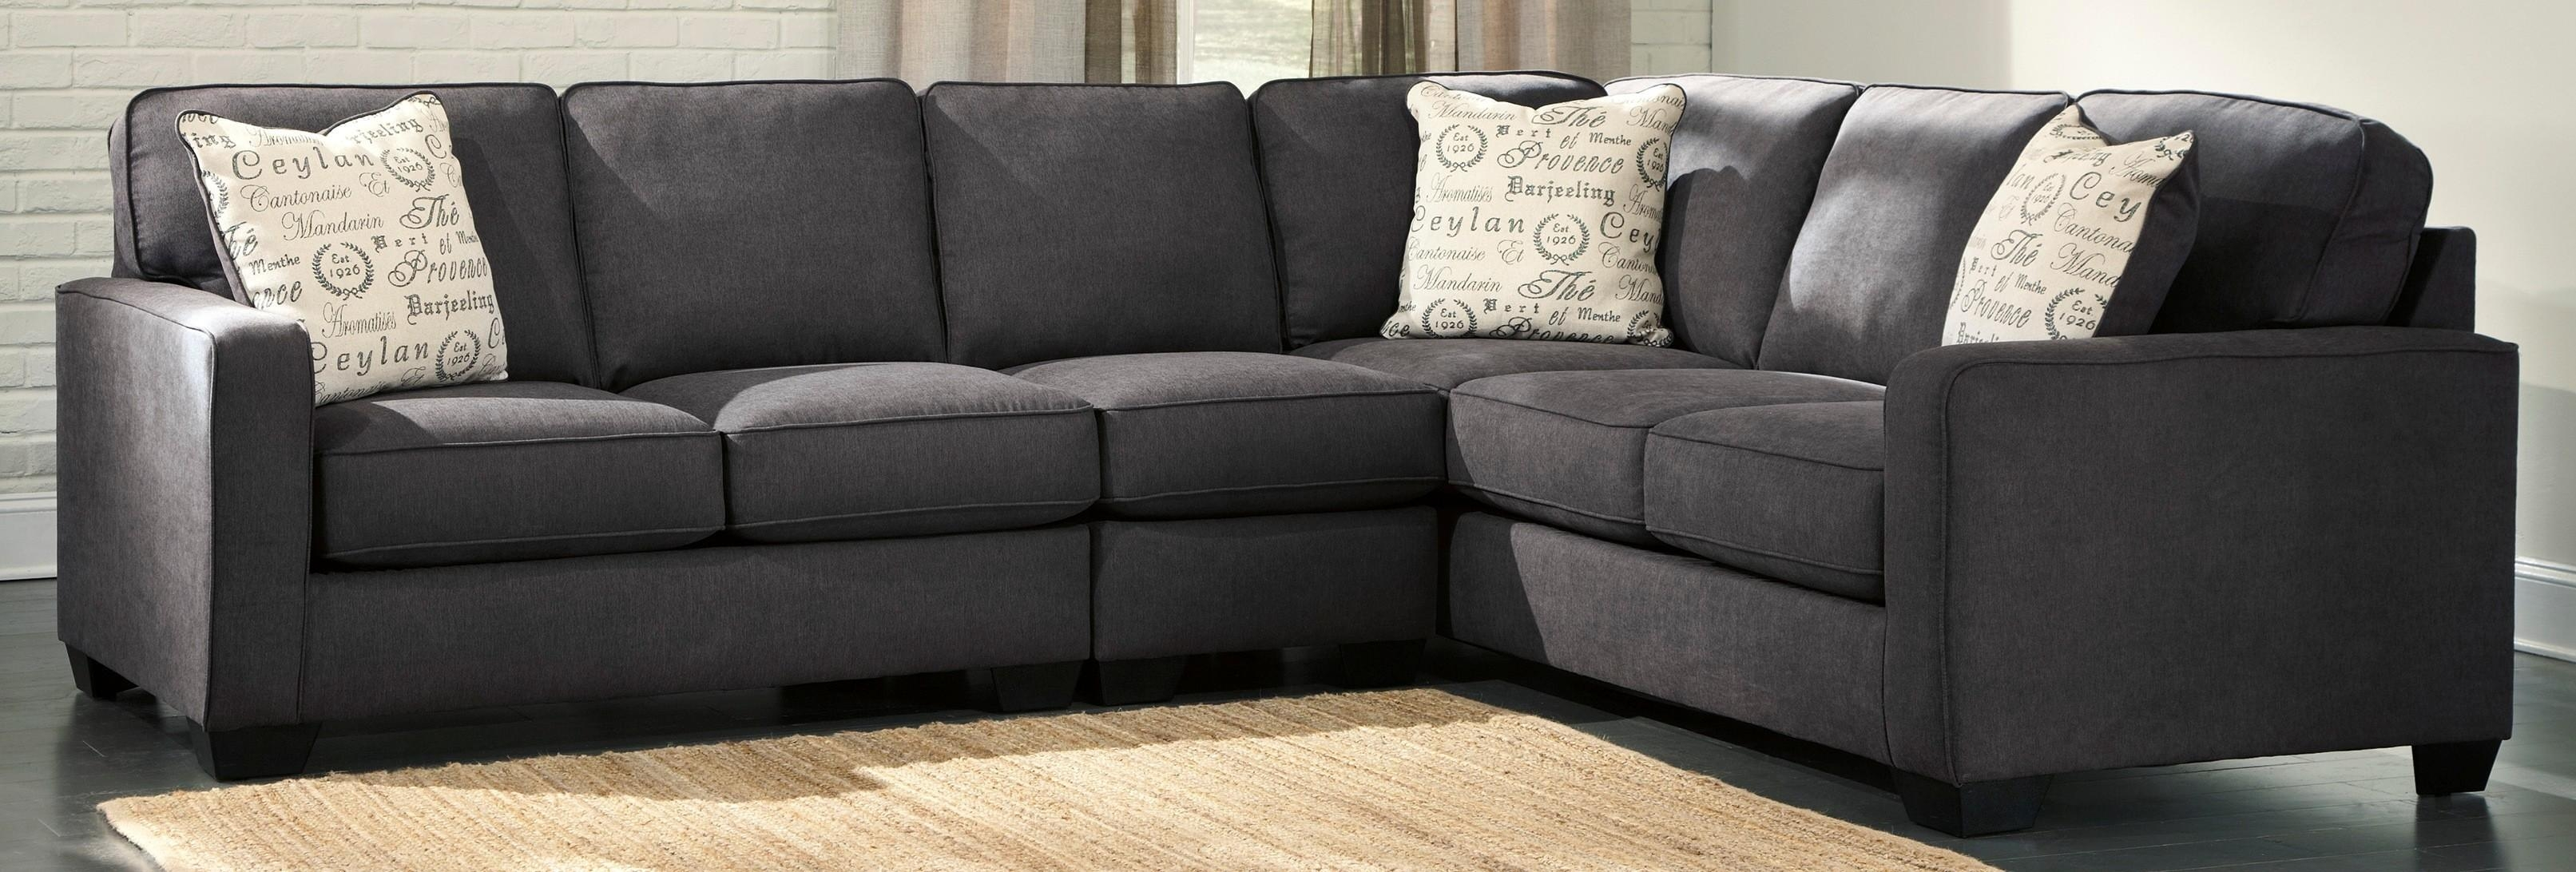 Sofas Center : Beautifularcoal Gray Sectional Sofa Pictures In Charcoal Gray Sectional Sofas (View 15 of 20)